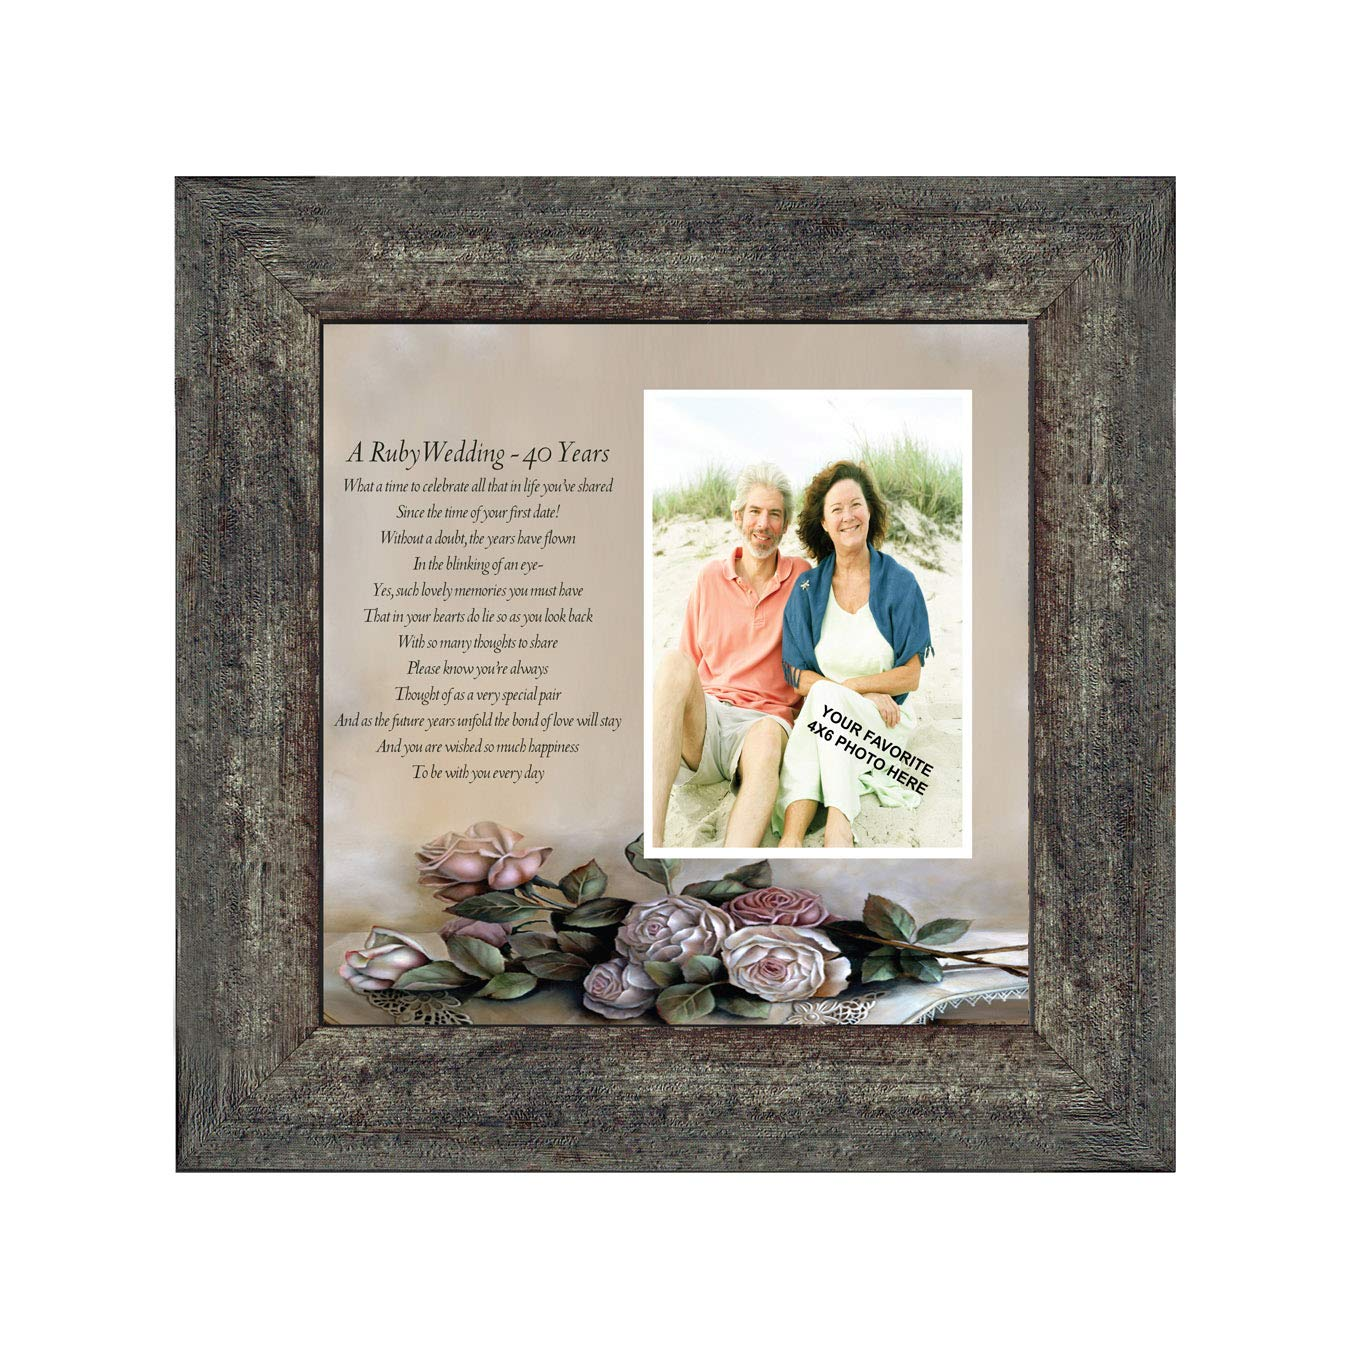 Personalized Ruby Wedding Anniversary Picture Frame 40th Wedding Anniversary 10x10 6307B BOL Productions 6776 Ruby Anniversary